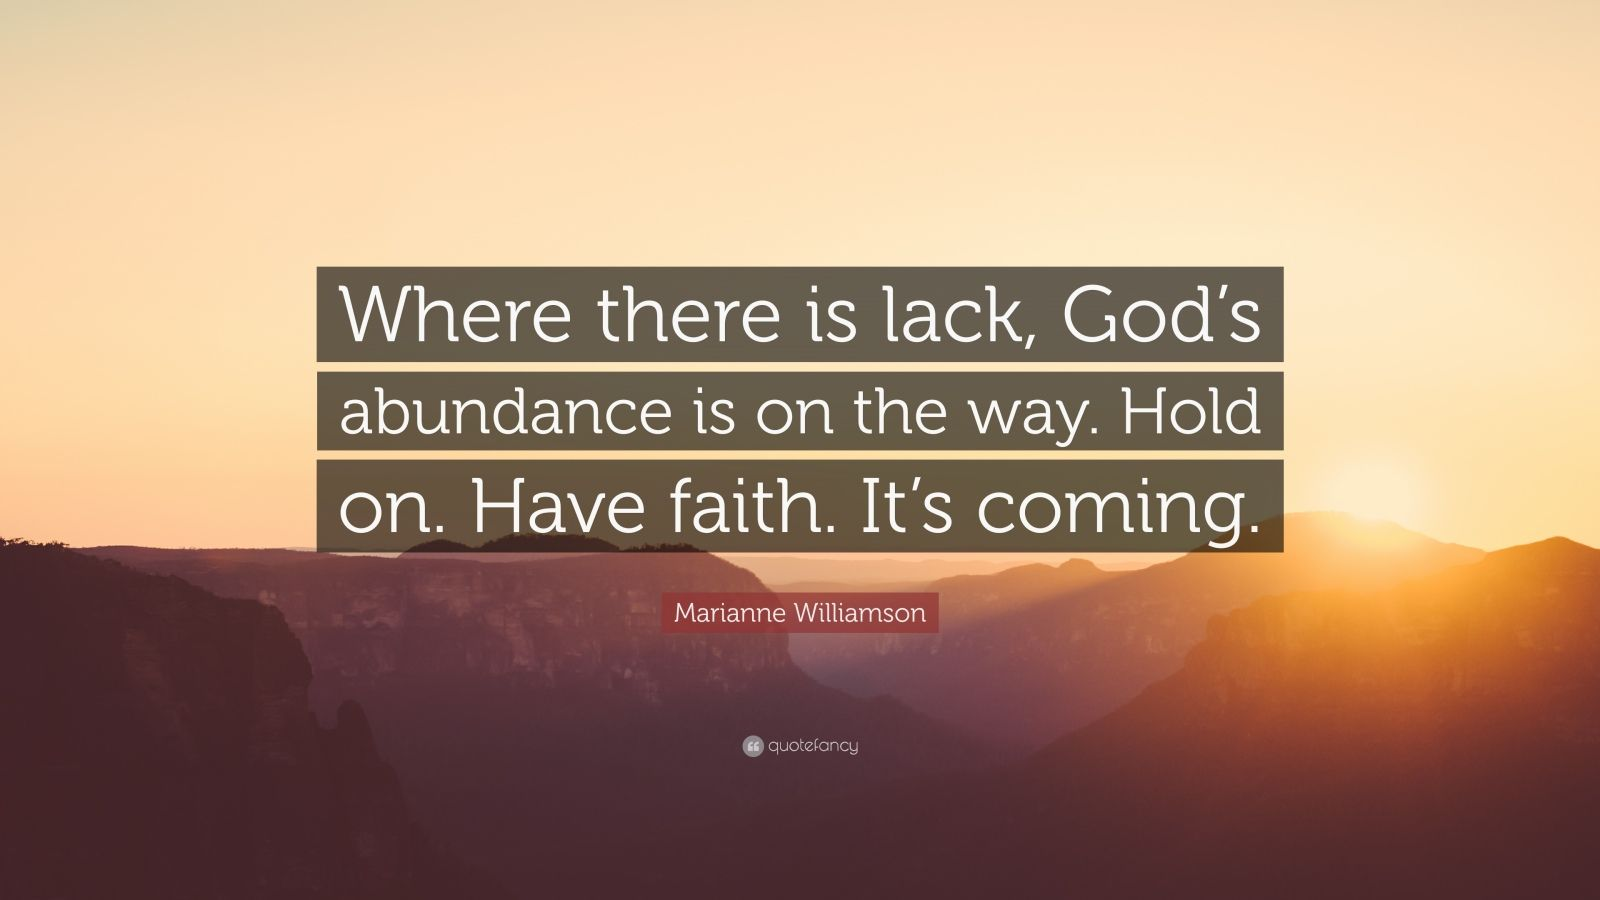 """Marianne Williamson Quote: """"Where there is lack, God's abundance is on the way. Hold on. Have faith. It's coming."""""""